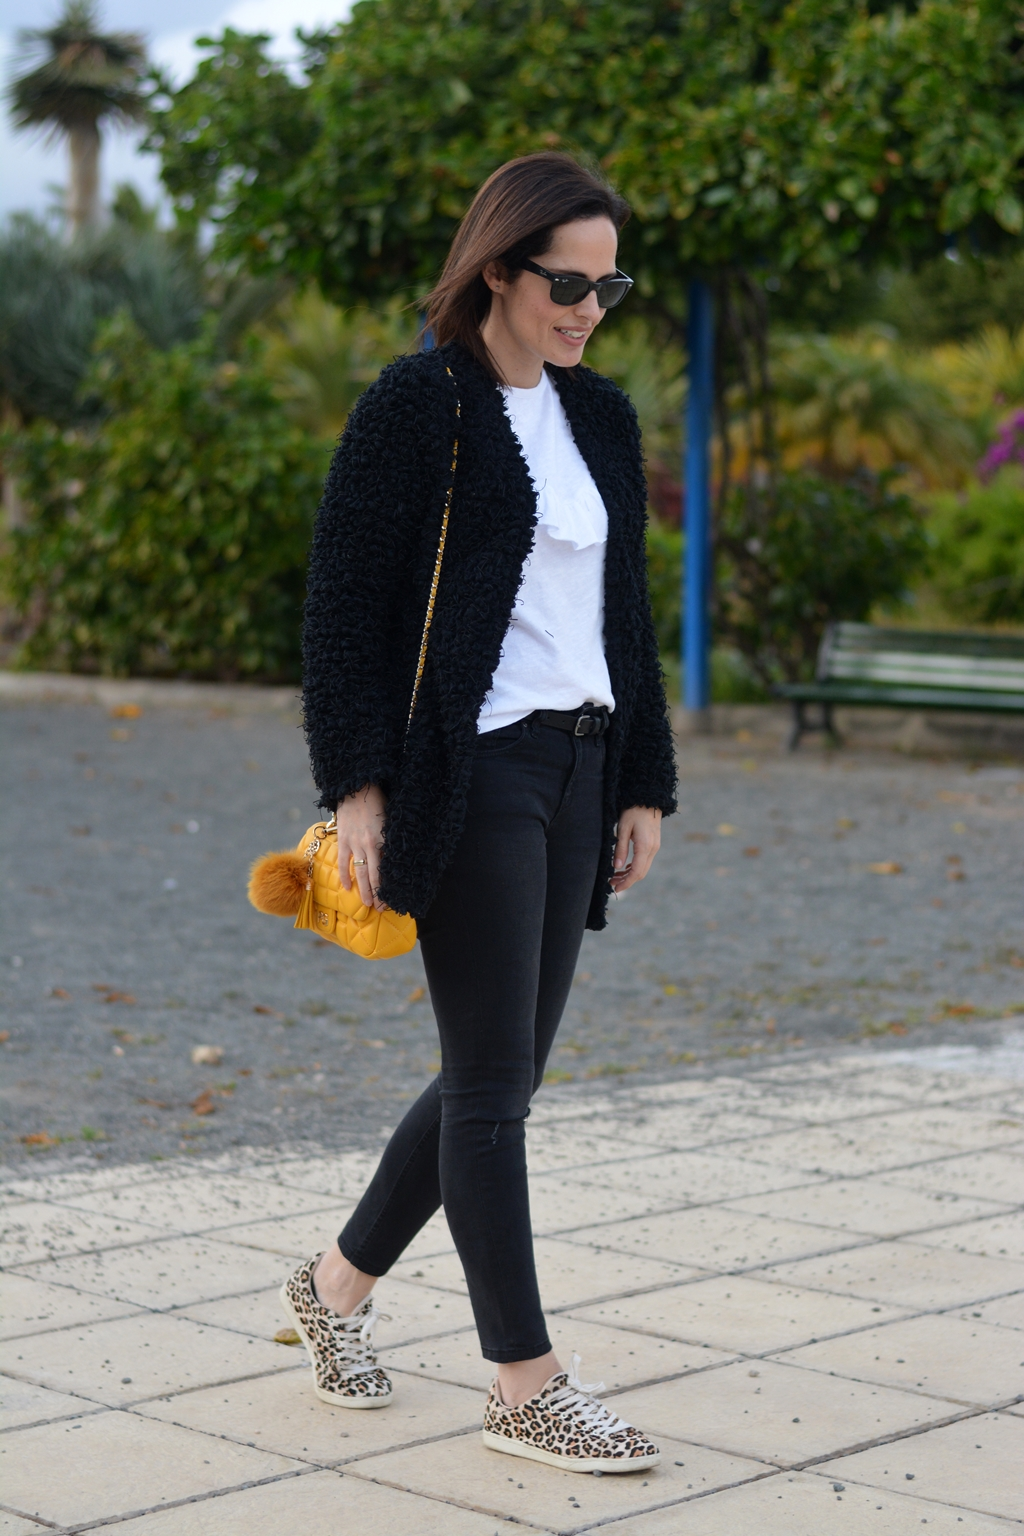 yellow-bag-blanco-negro-outfit-streetstyle